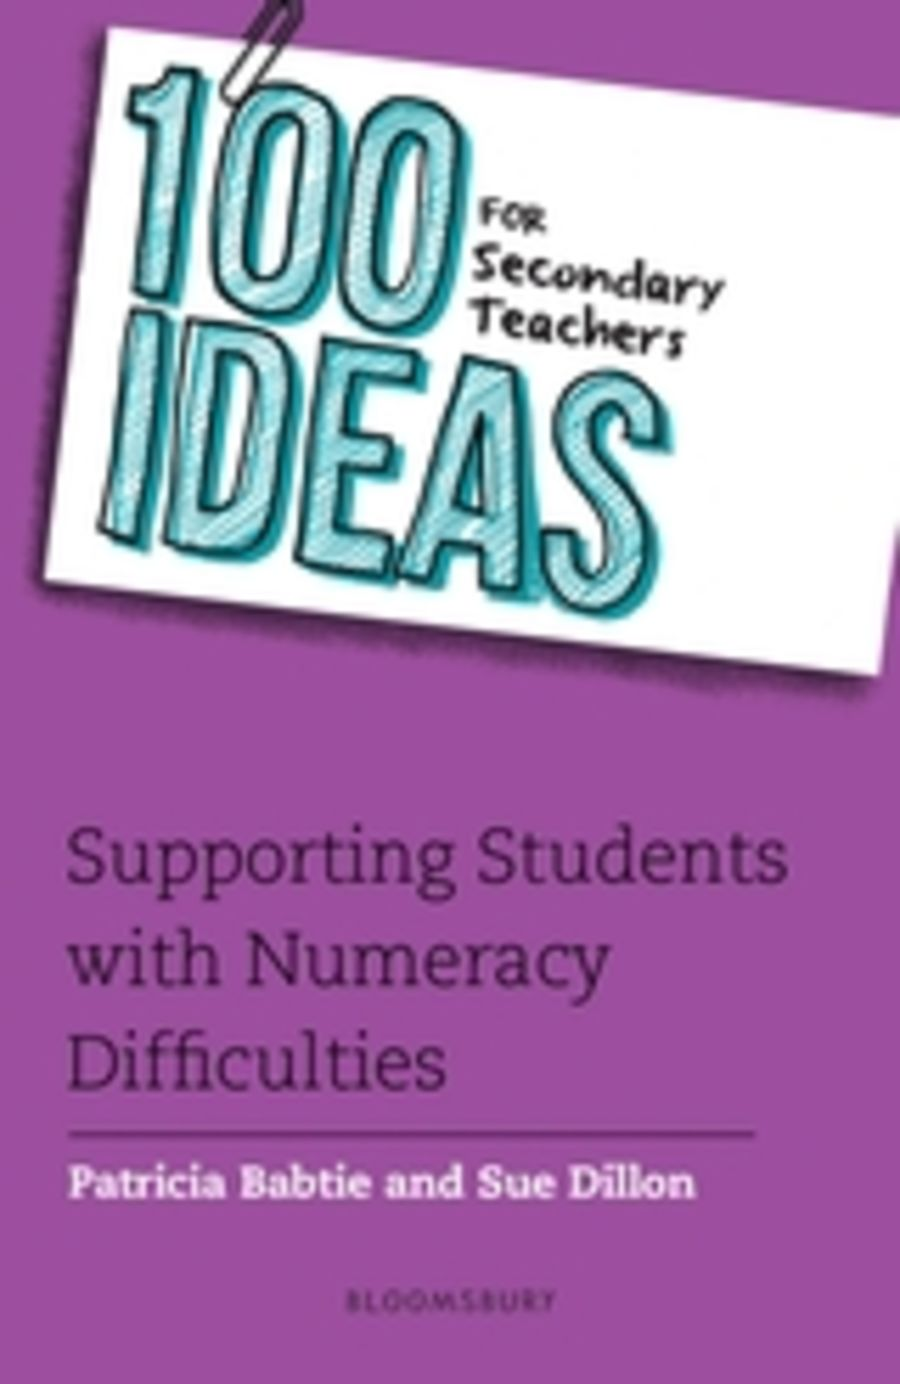 100 Ideas for Secondary Teachers in Supporting Students with Numeracy Difficulties